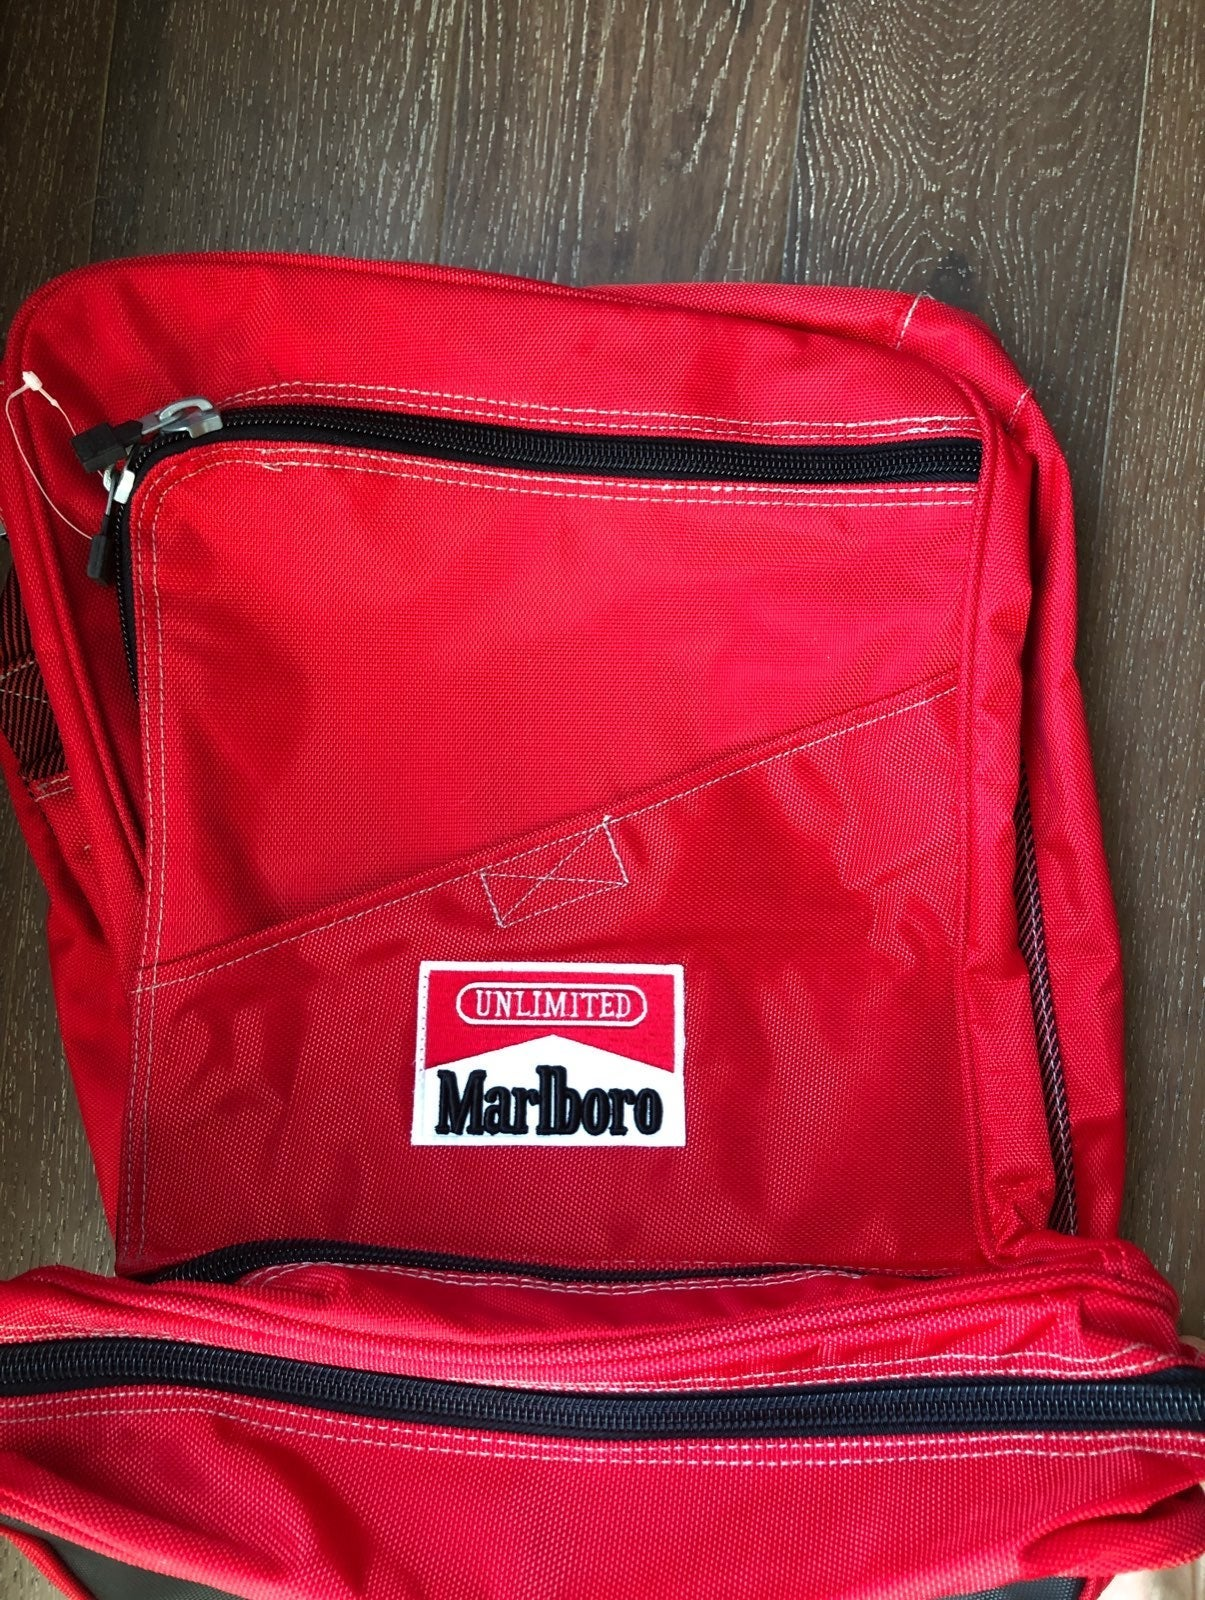 Marlboro backpack